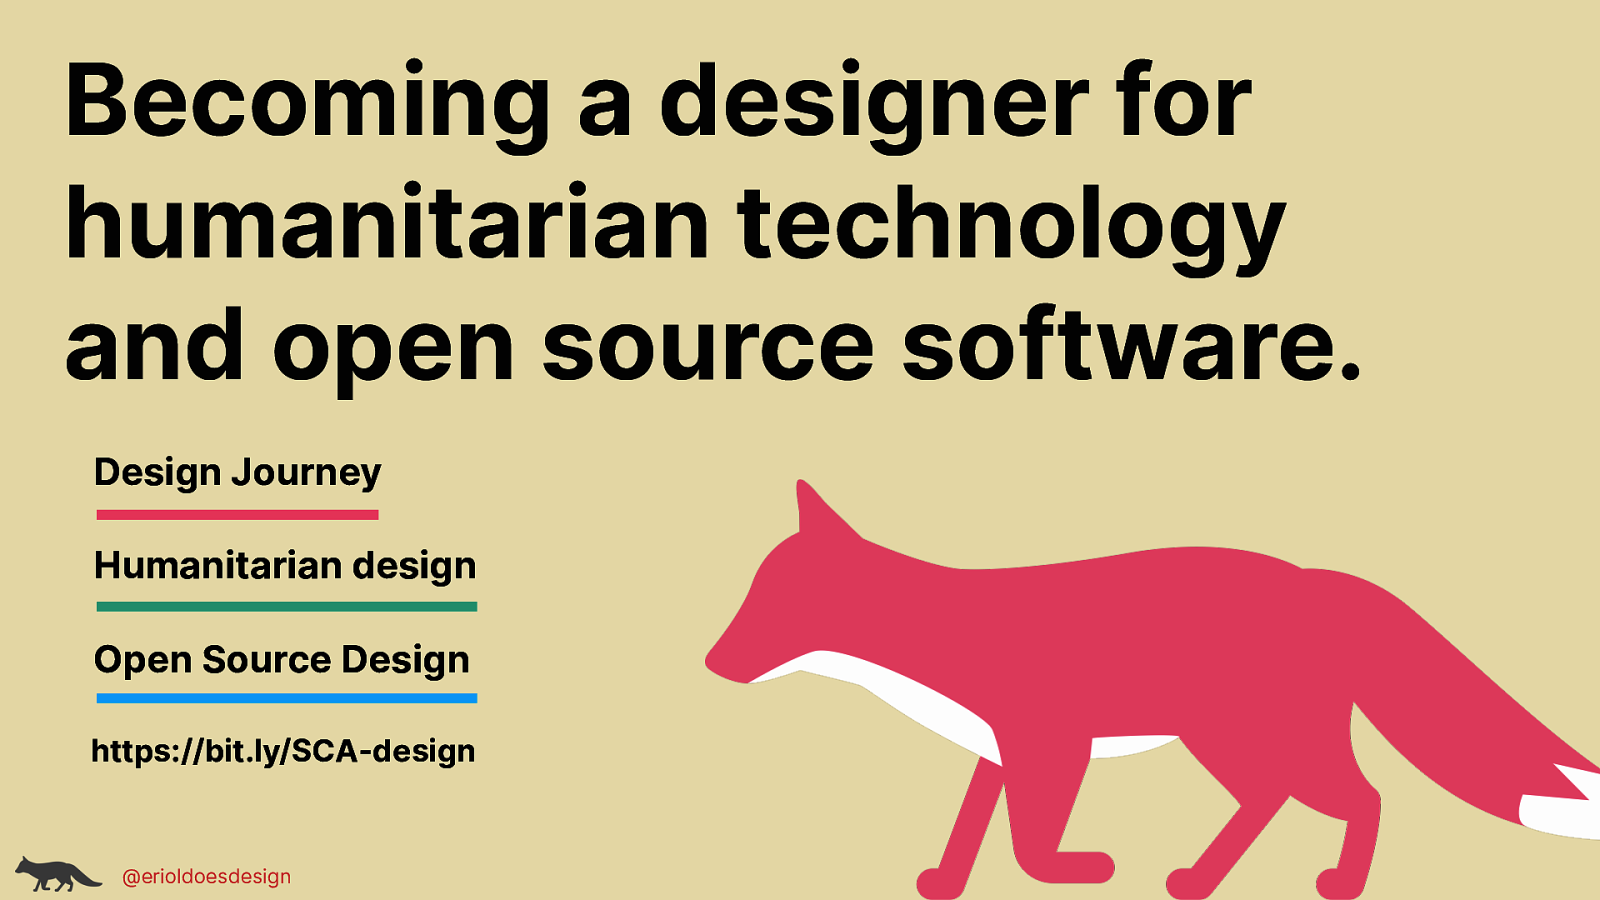 Becoming a designer for humanitarian technology and open source software.